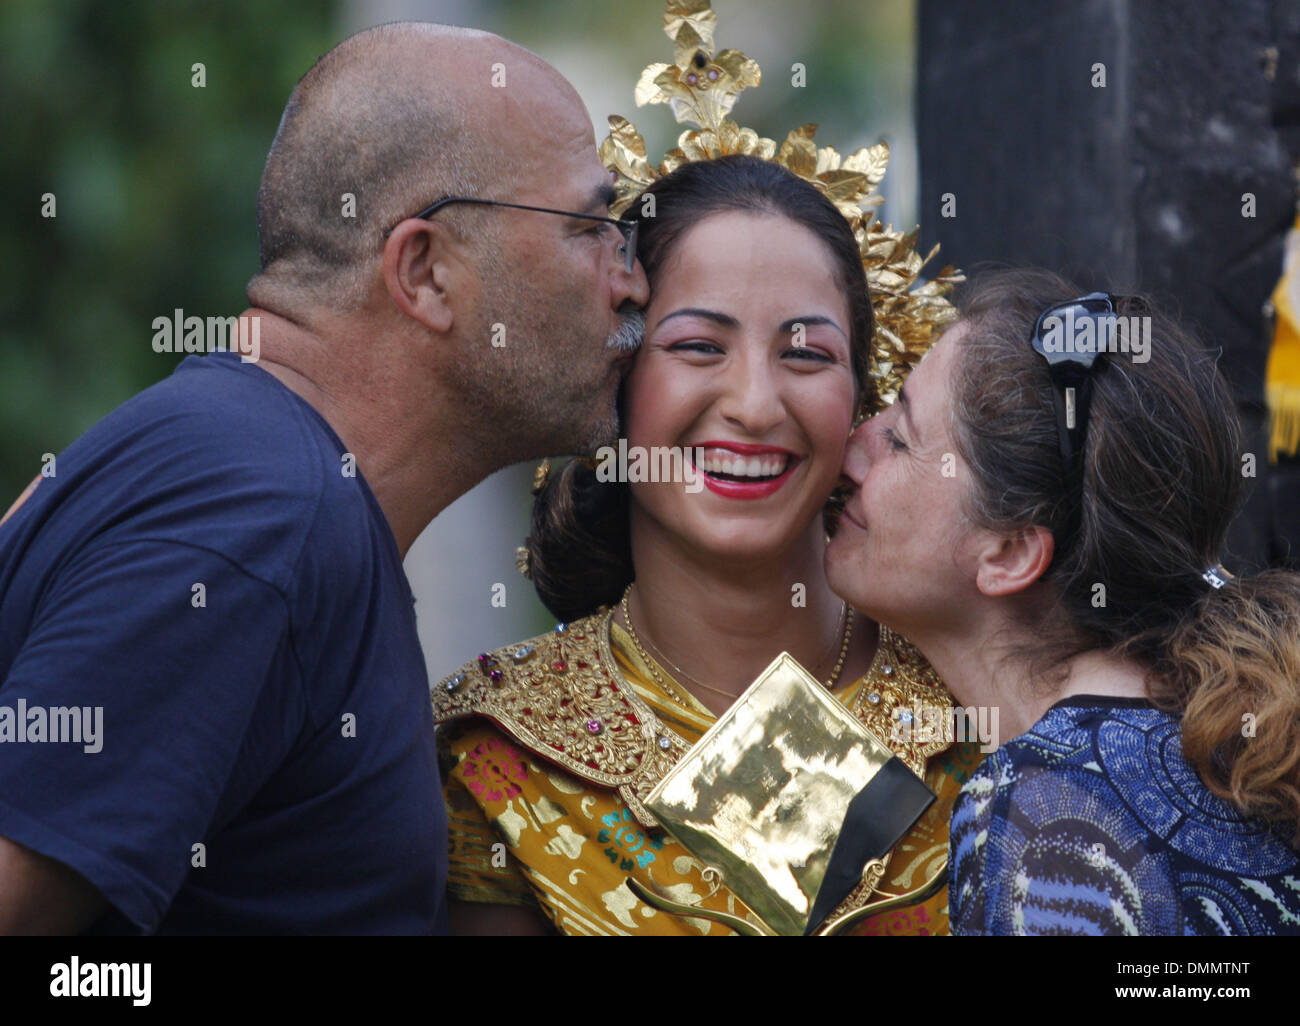 Nov 08, 2009 - Nusa Dua, Bali, Indonesia - French player ARAVANE REZAI (middle) with her father Arsalan (right) and mother Nouchine (left) pose in Balinese traditional costume with her trophy during photo session after final match of tennis tournament Commonwealth Bank WTA Tour 2009. Rezai become the champion by score 7-5 in first set after Bartoli call retire due to her leg injur. - Stock Image